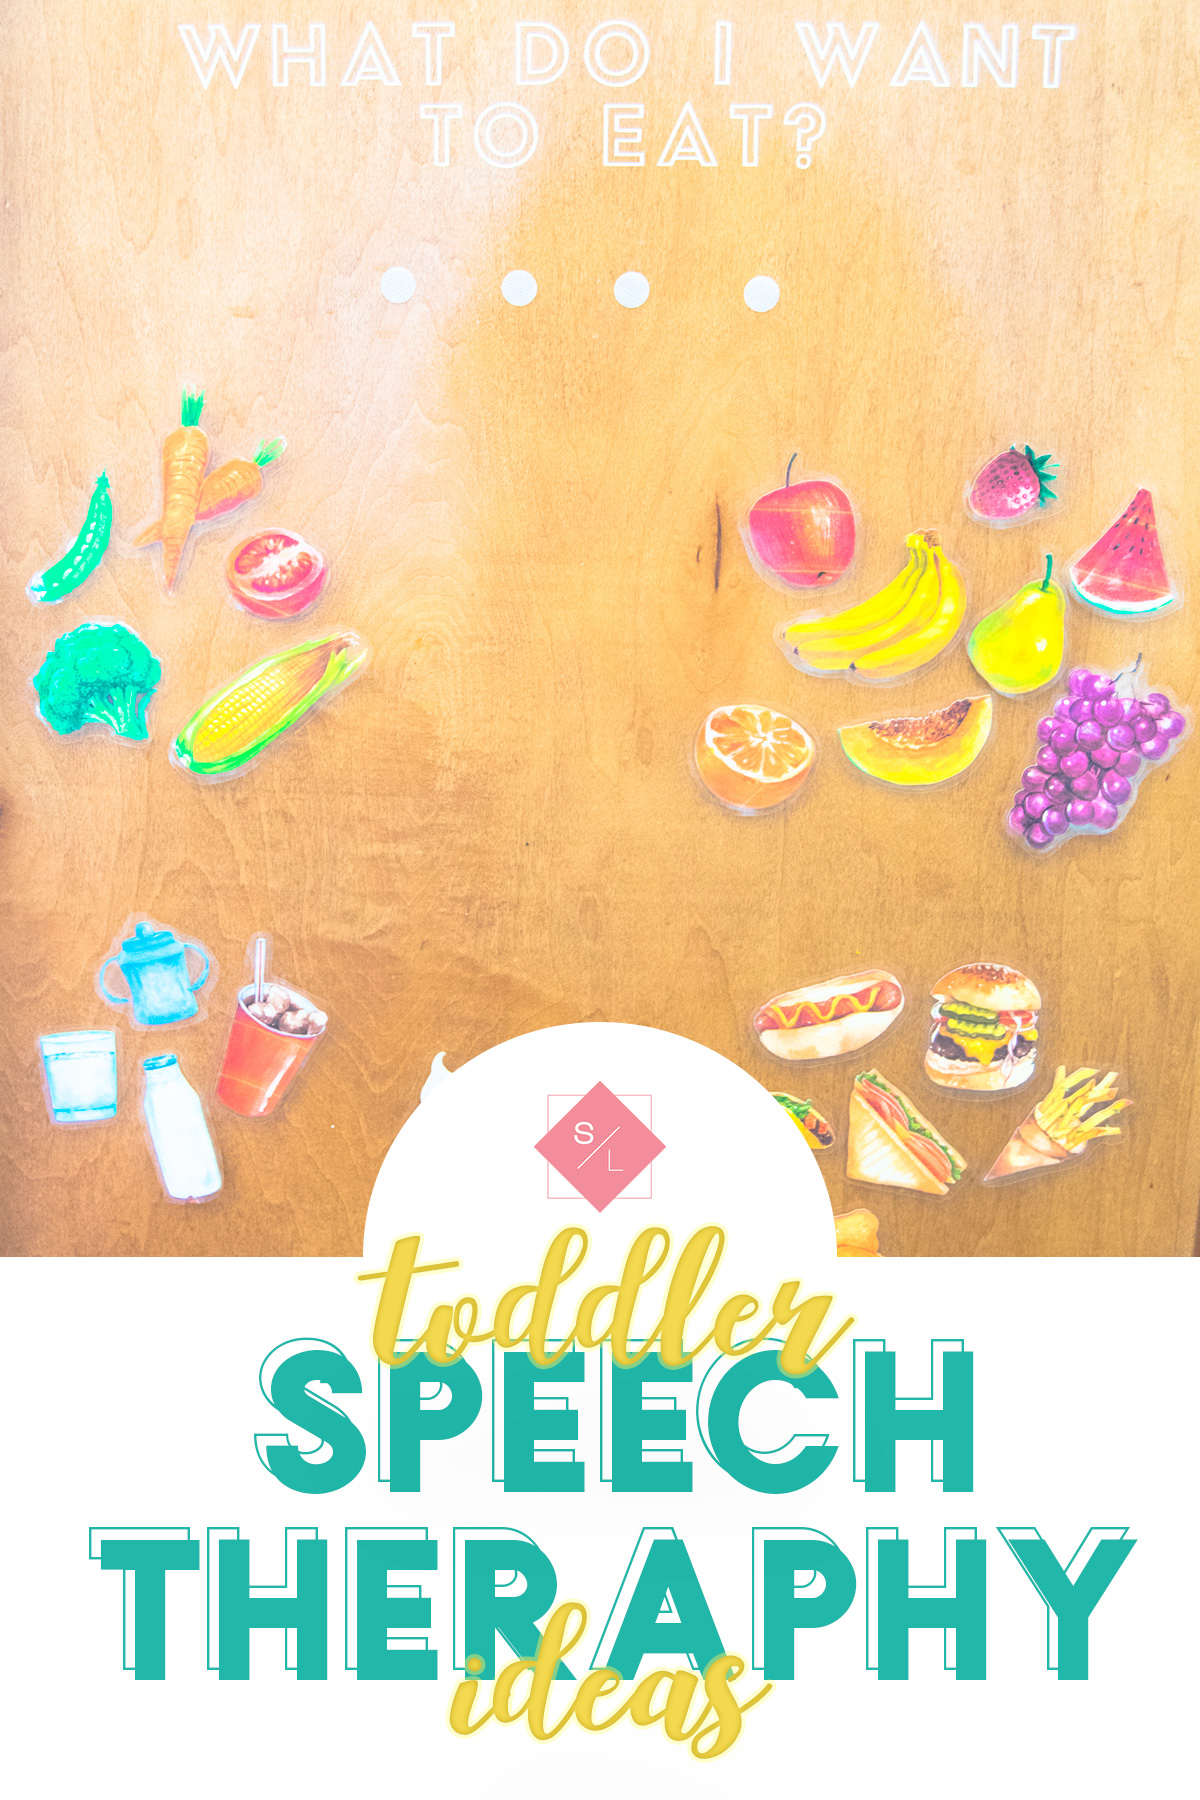 toddler speech therapy ideas